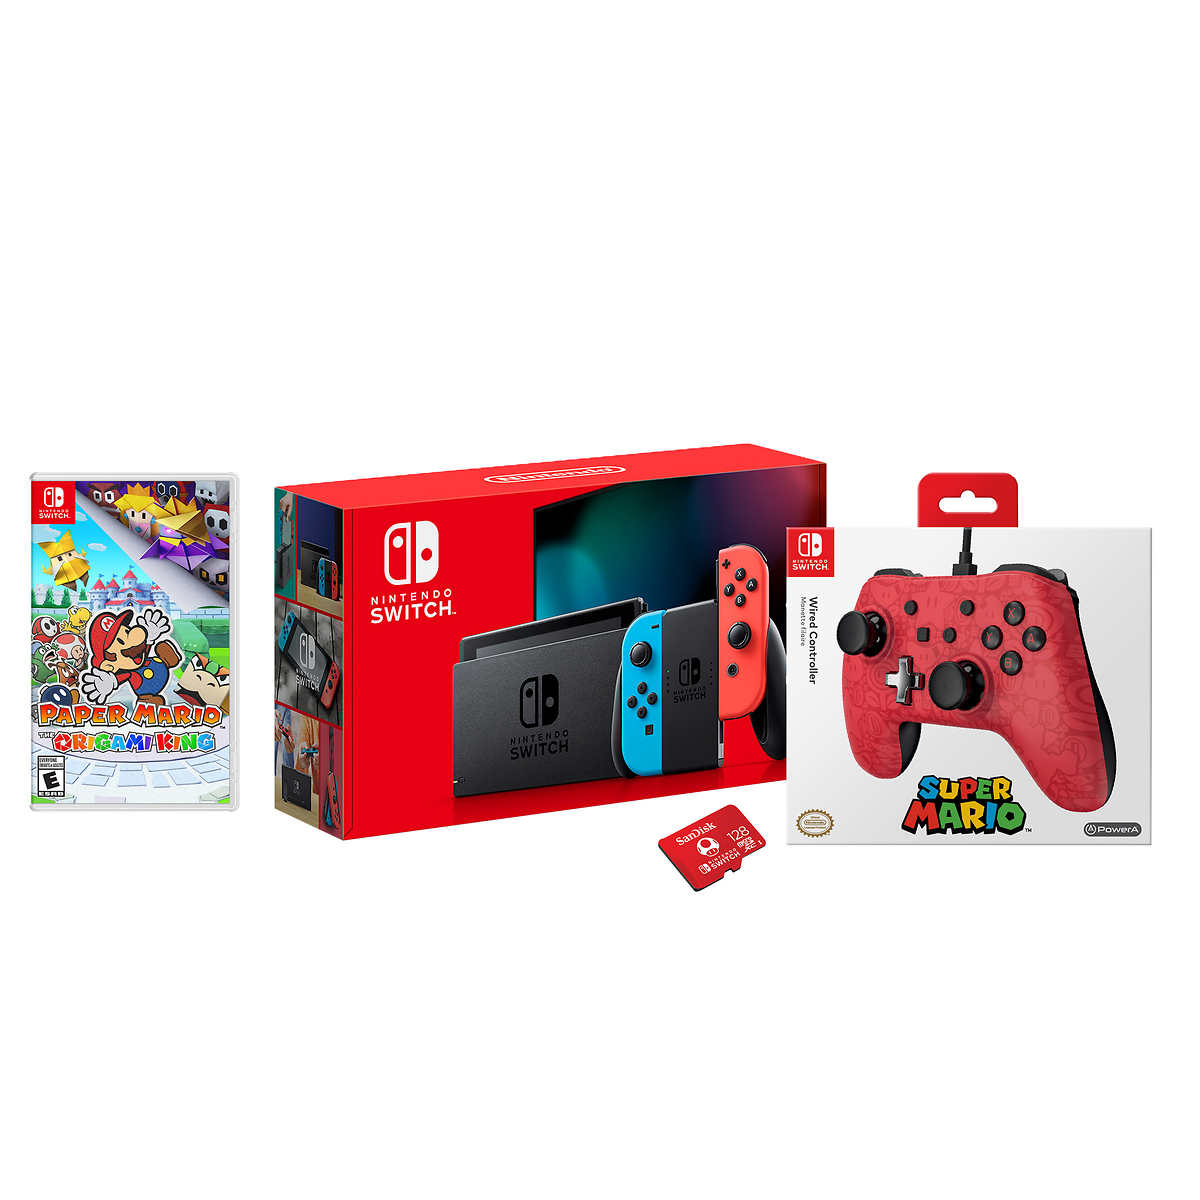 Nintendo Switch Red Blue Paper Mario Bundle Hey guys, first time posting, went with a friend who is a costco member to the docklands store, they were selling the nintendo switch for $439, which is by far the cheapest i use a 5% discounted wish card to get the bundle at bigw for $493.05. nintendo switch red blue paper mario bundle